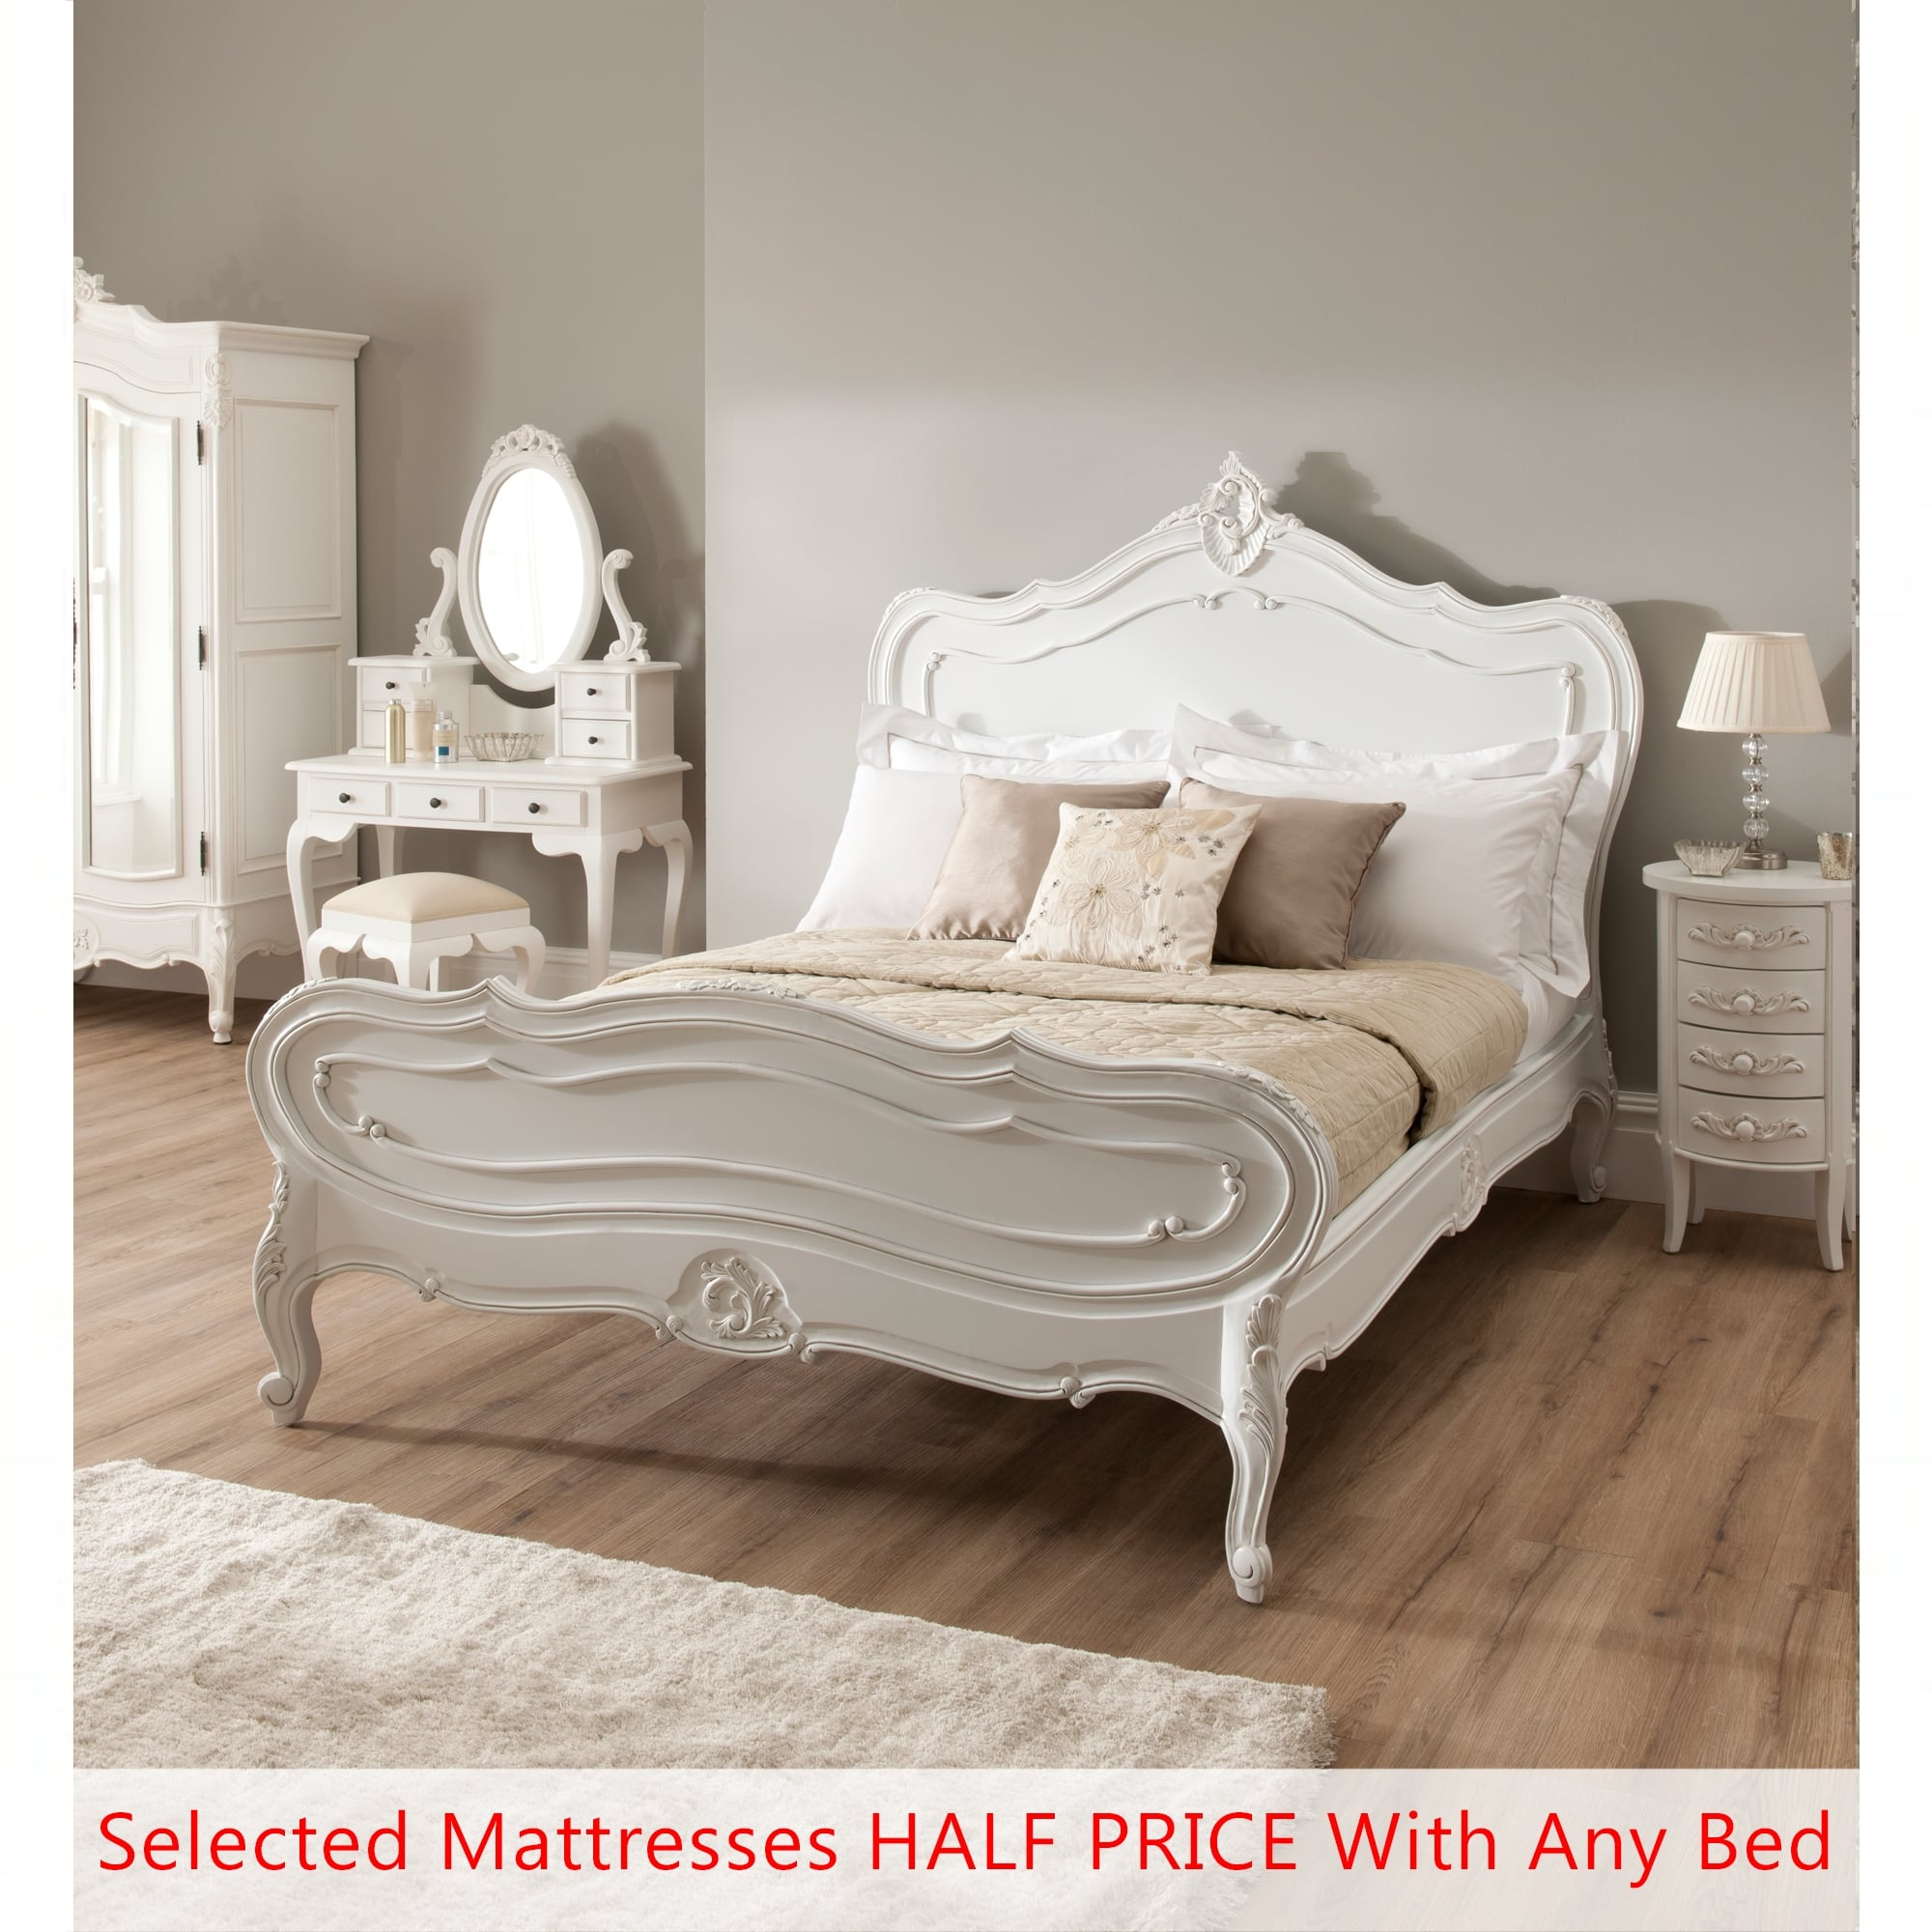 be beds uncomfortable space california king since taller method they may house mattress istock size vs than less people provide for foot mattresses wellness